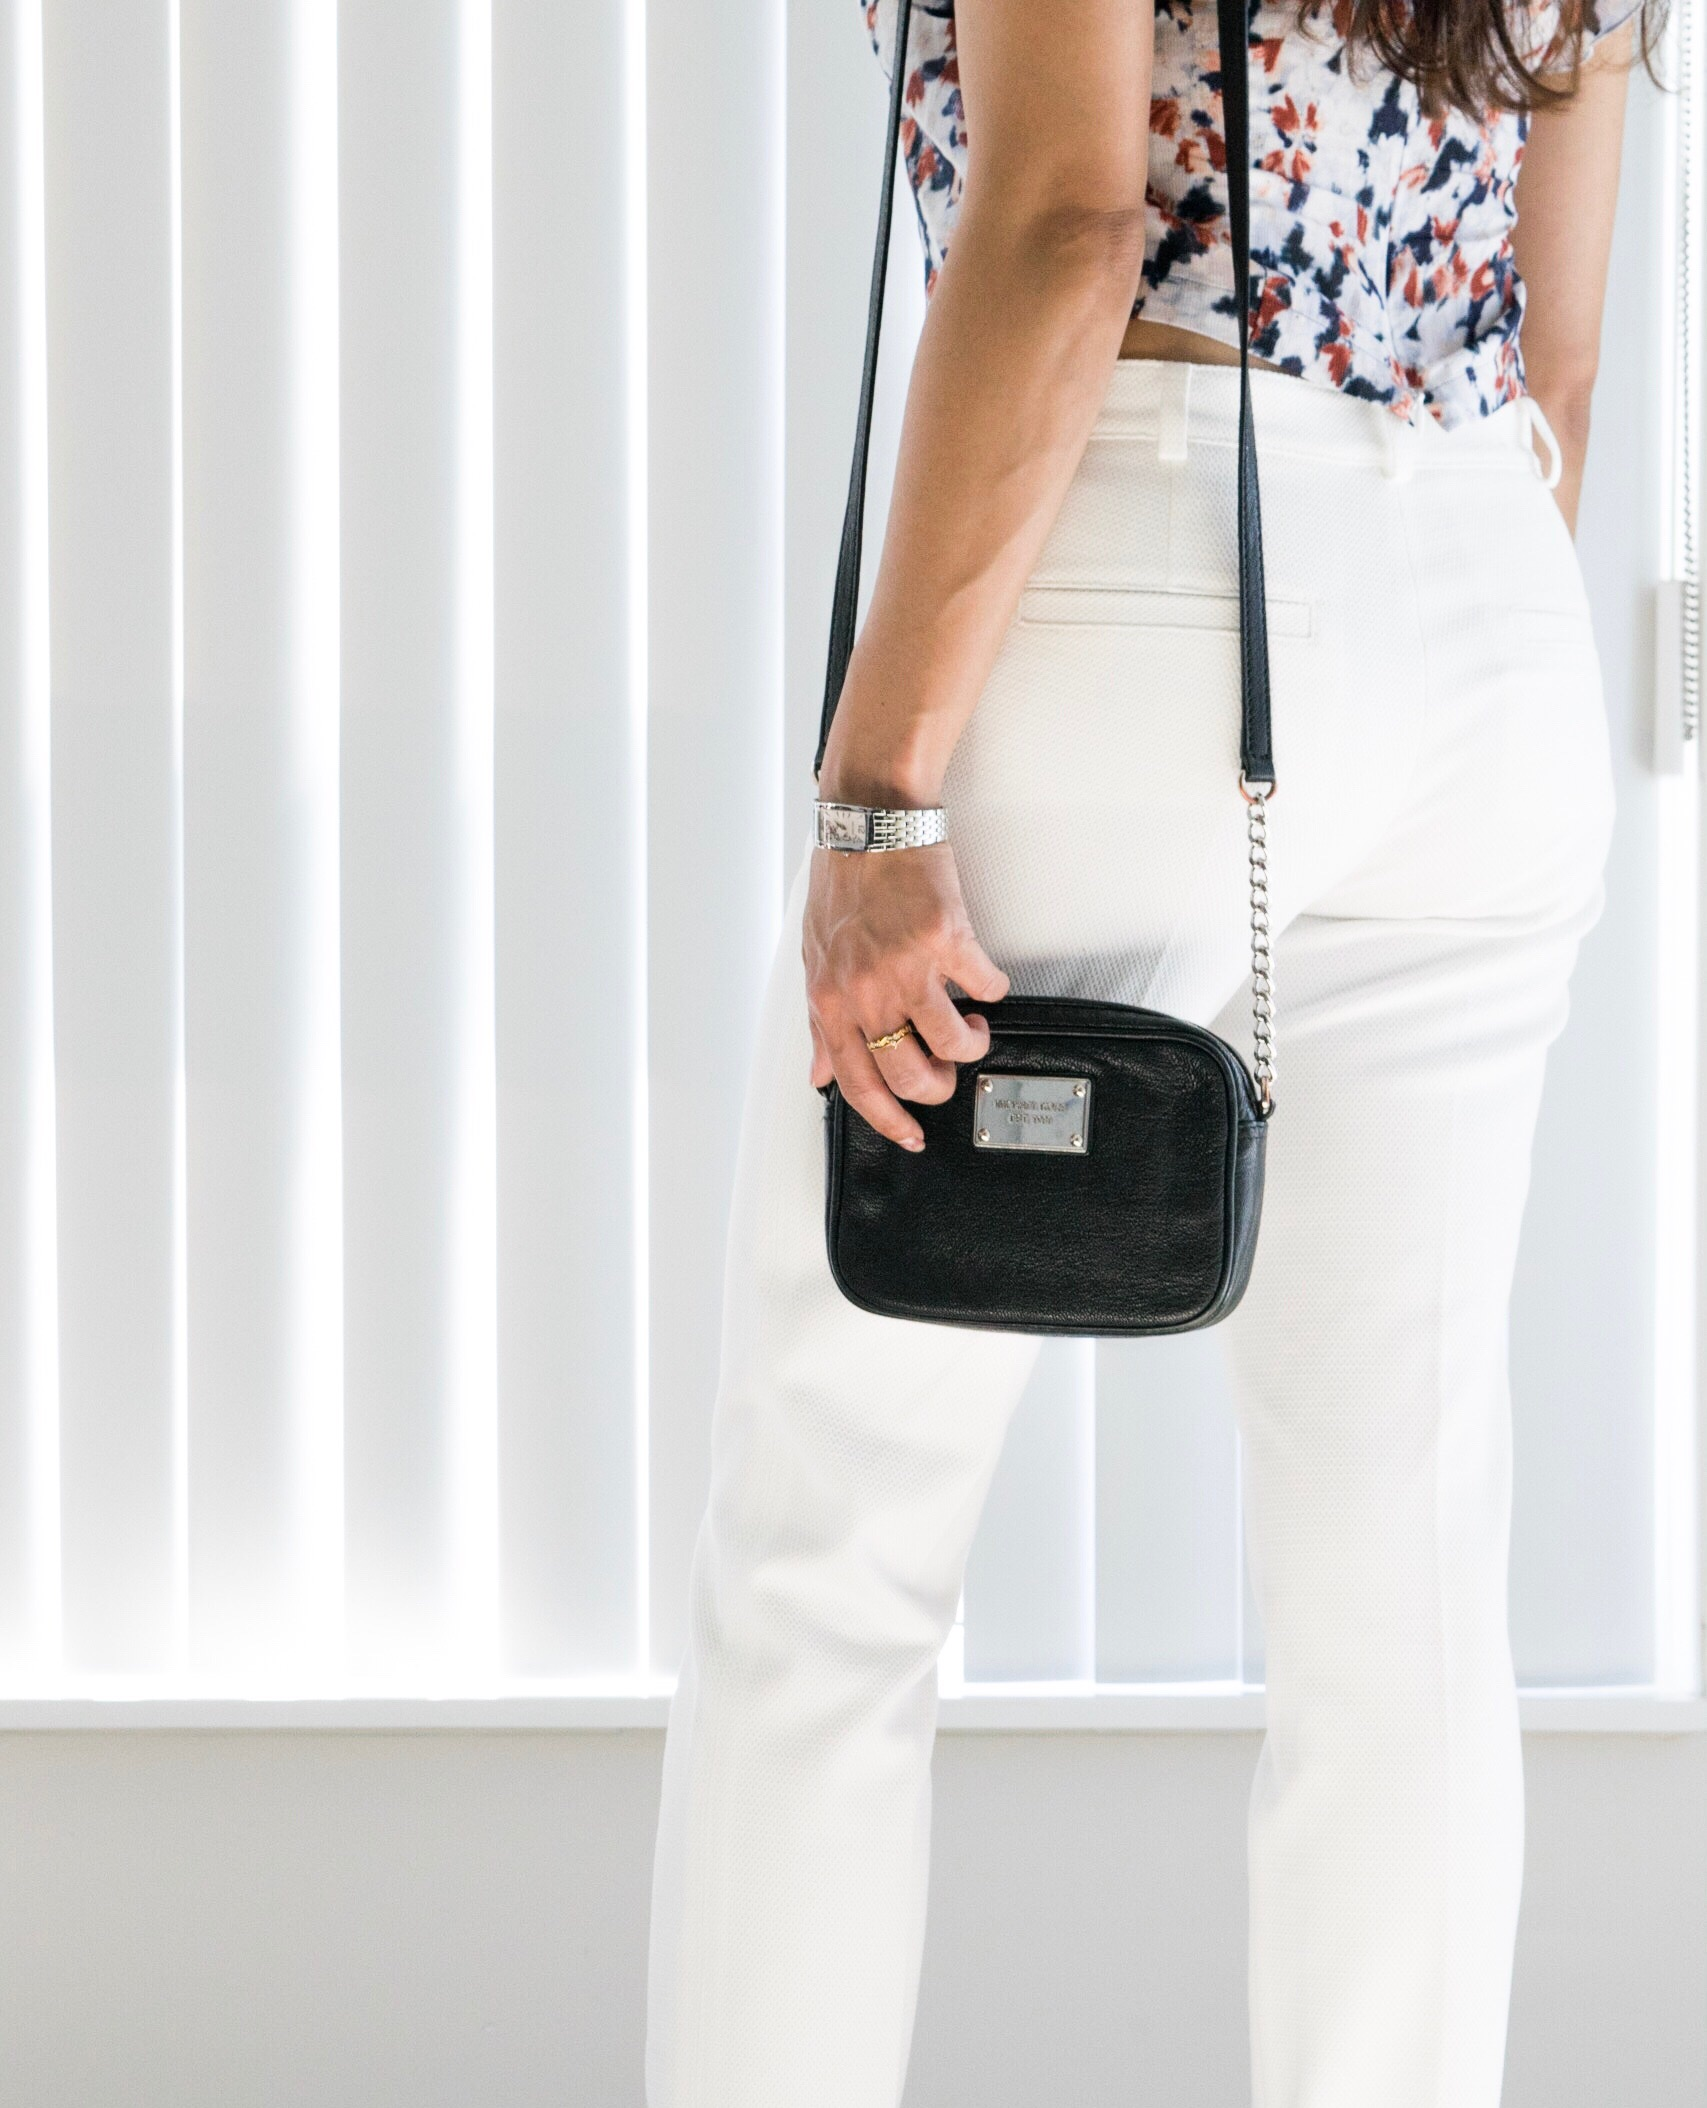 Crossbody Handbag and Wrist Watch - Nidhi Patel